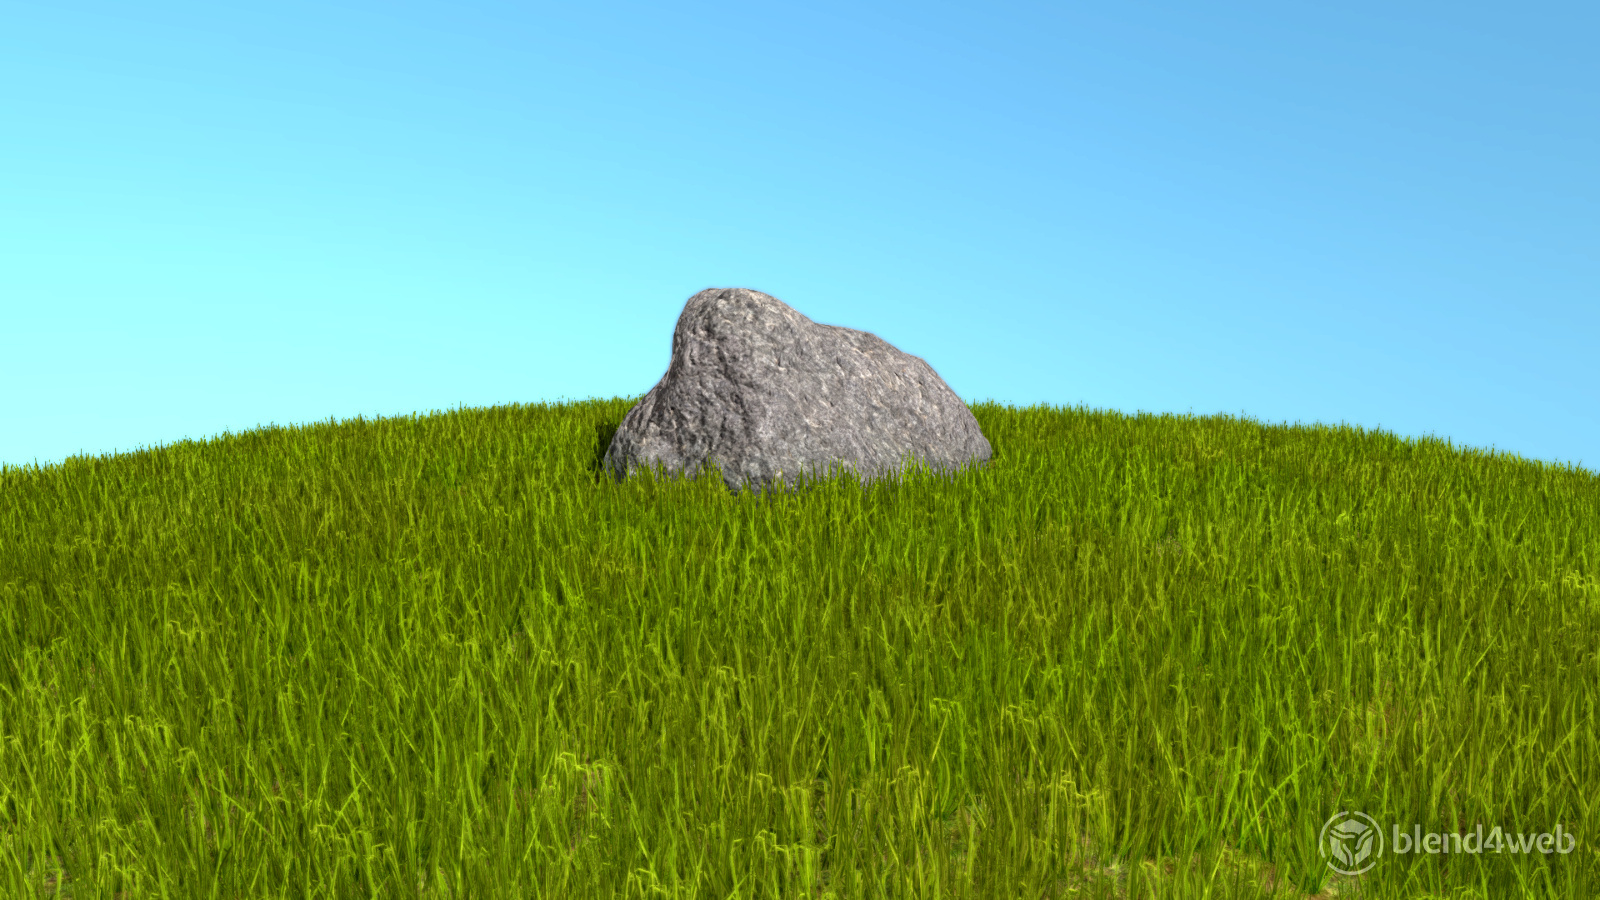 Visualizing Grass preview